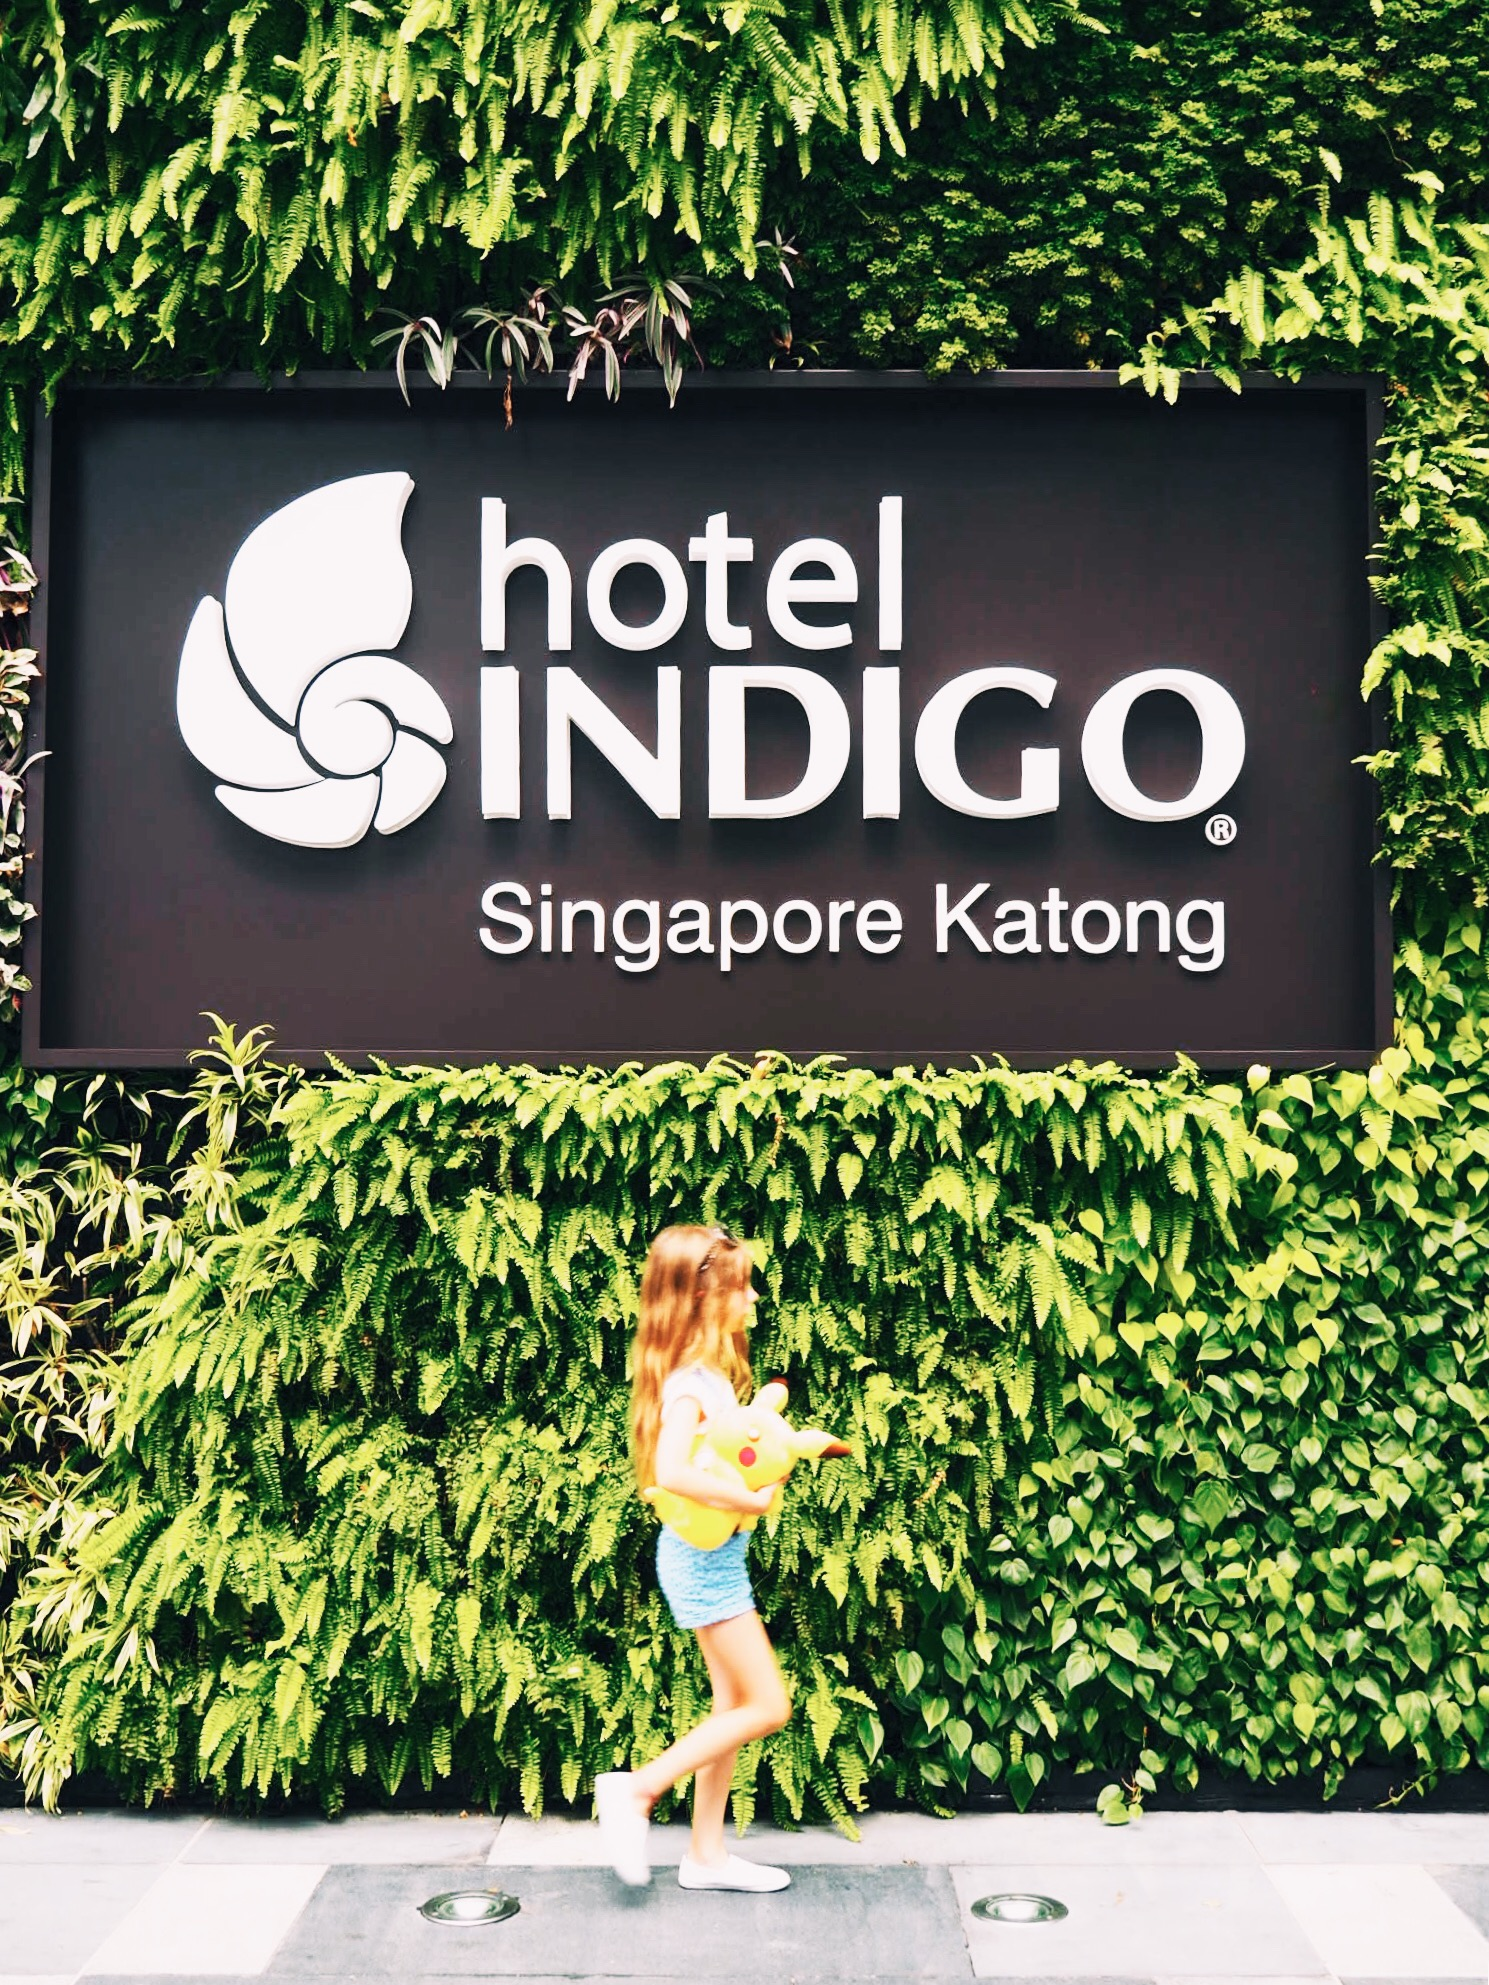 The discreet entrance to the Hotel Indigo Singapore Katong, concealed behind a wall of greenery.